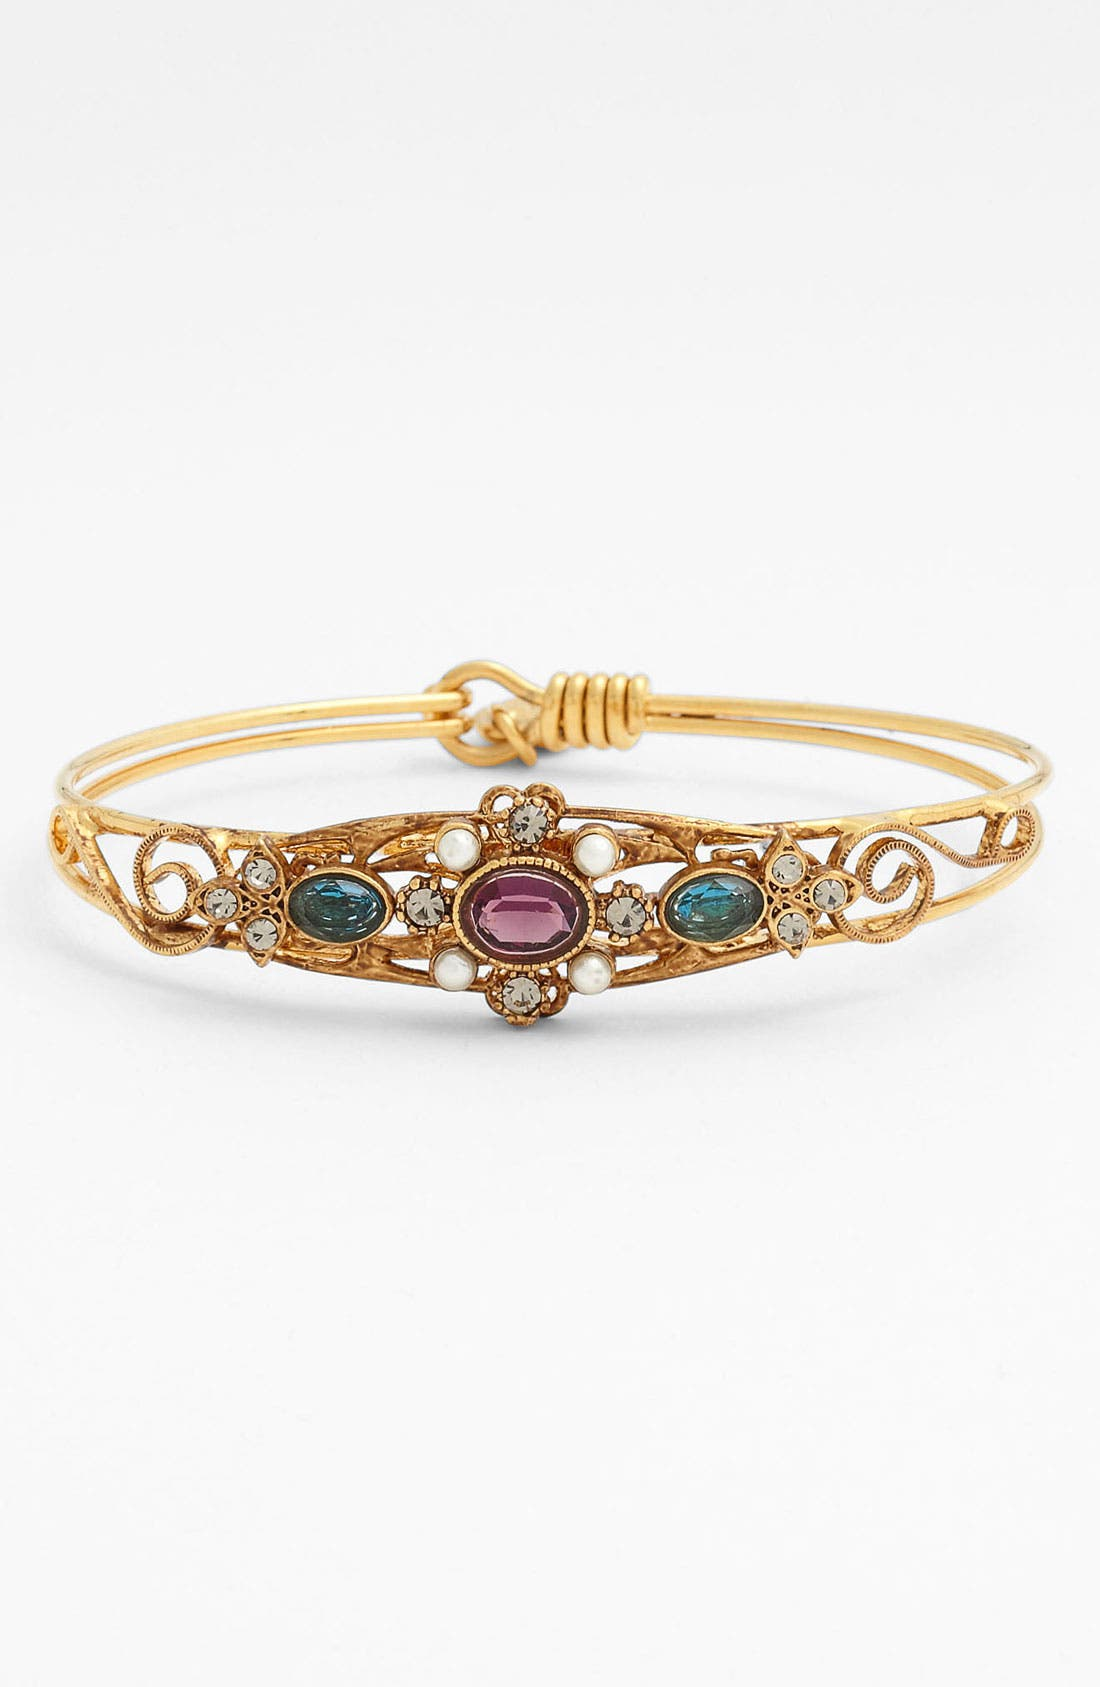 Main Image - Ollipop 'Vintage Gold' Bangle